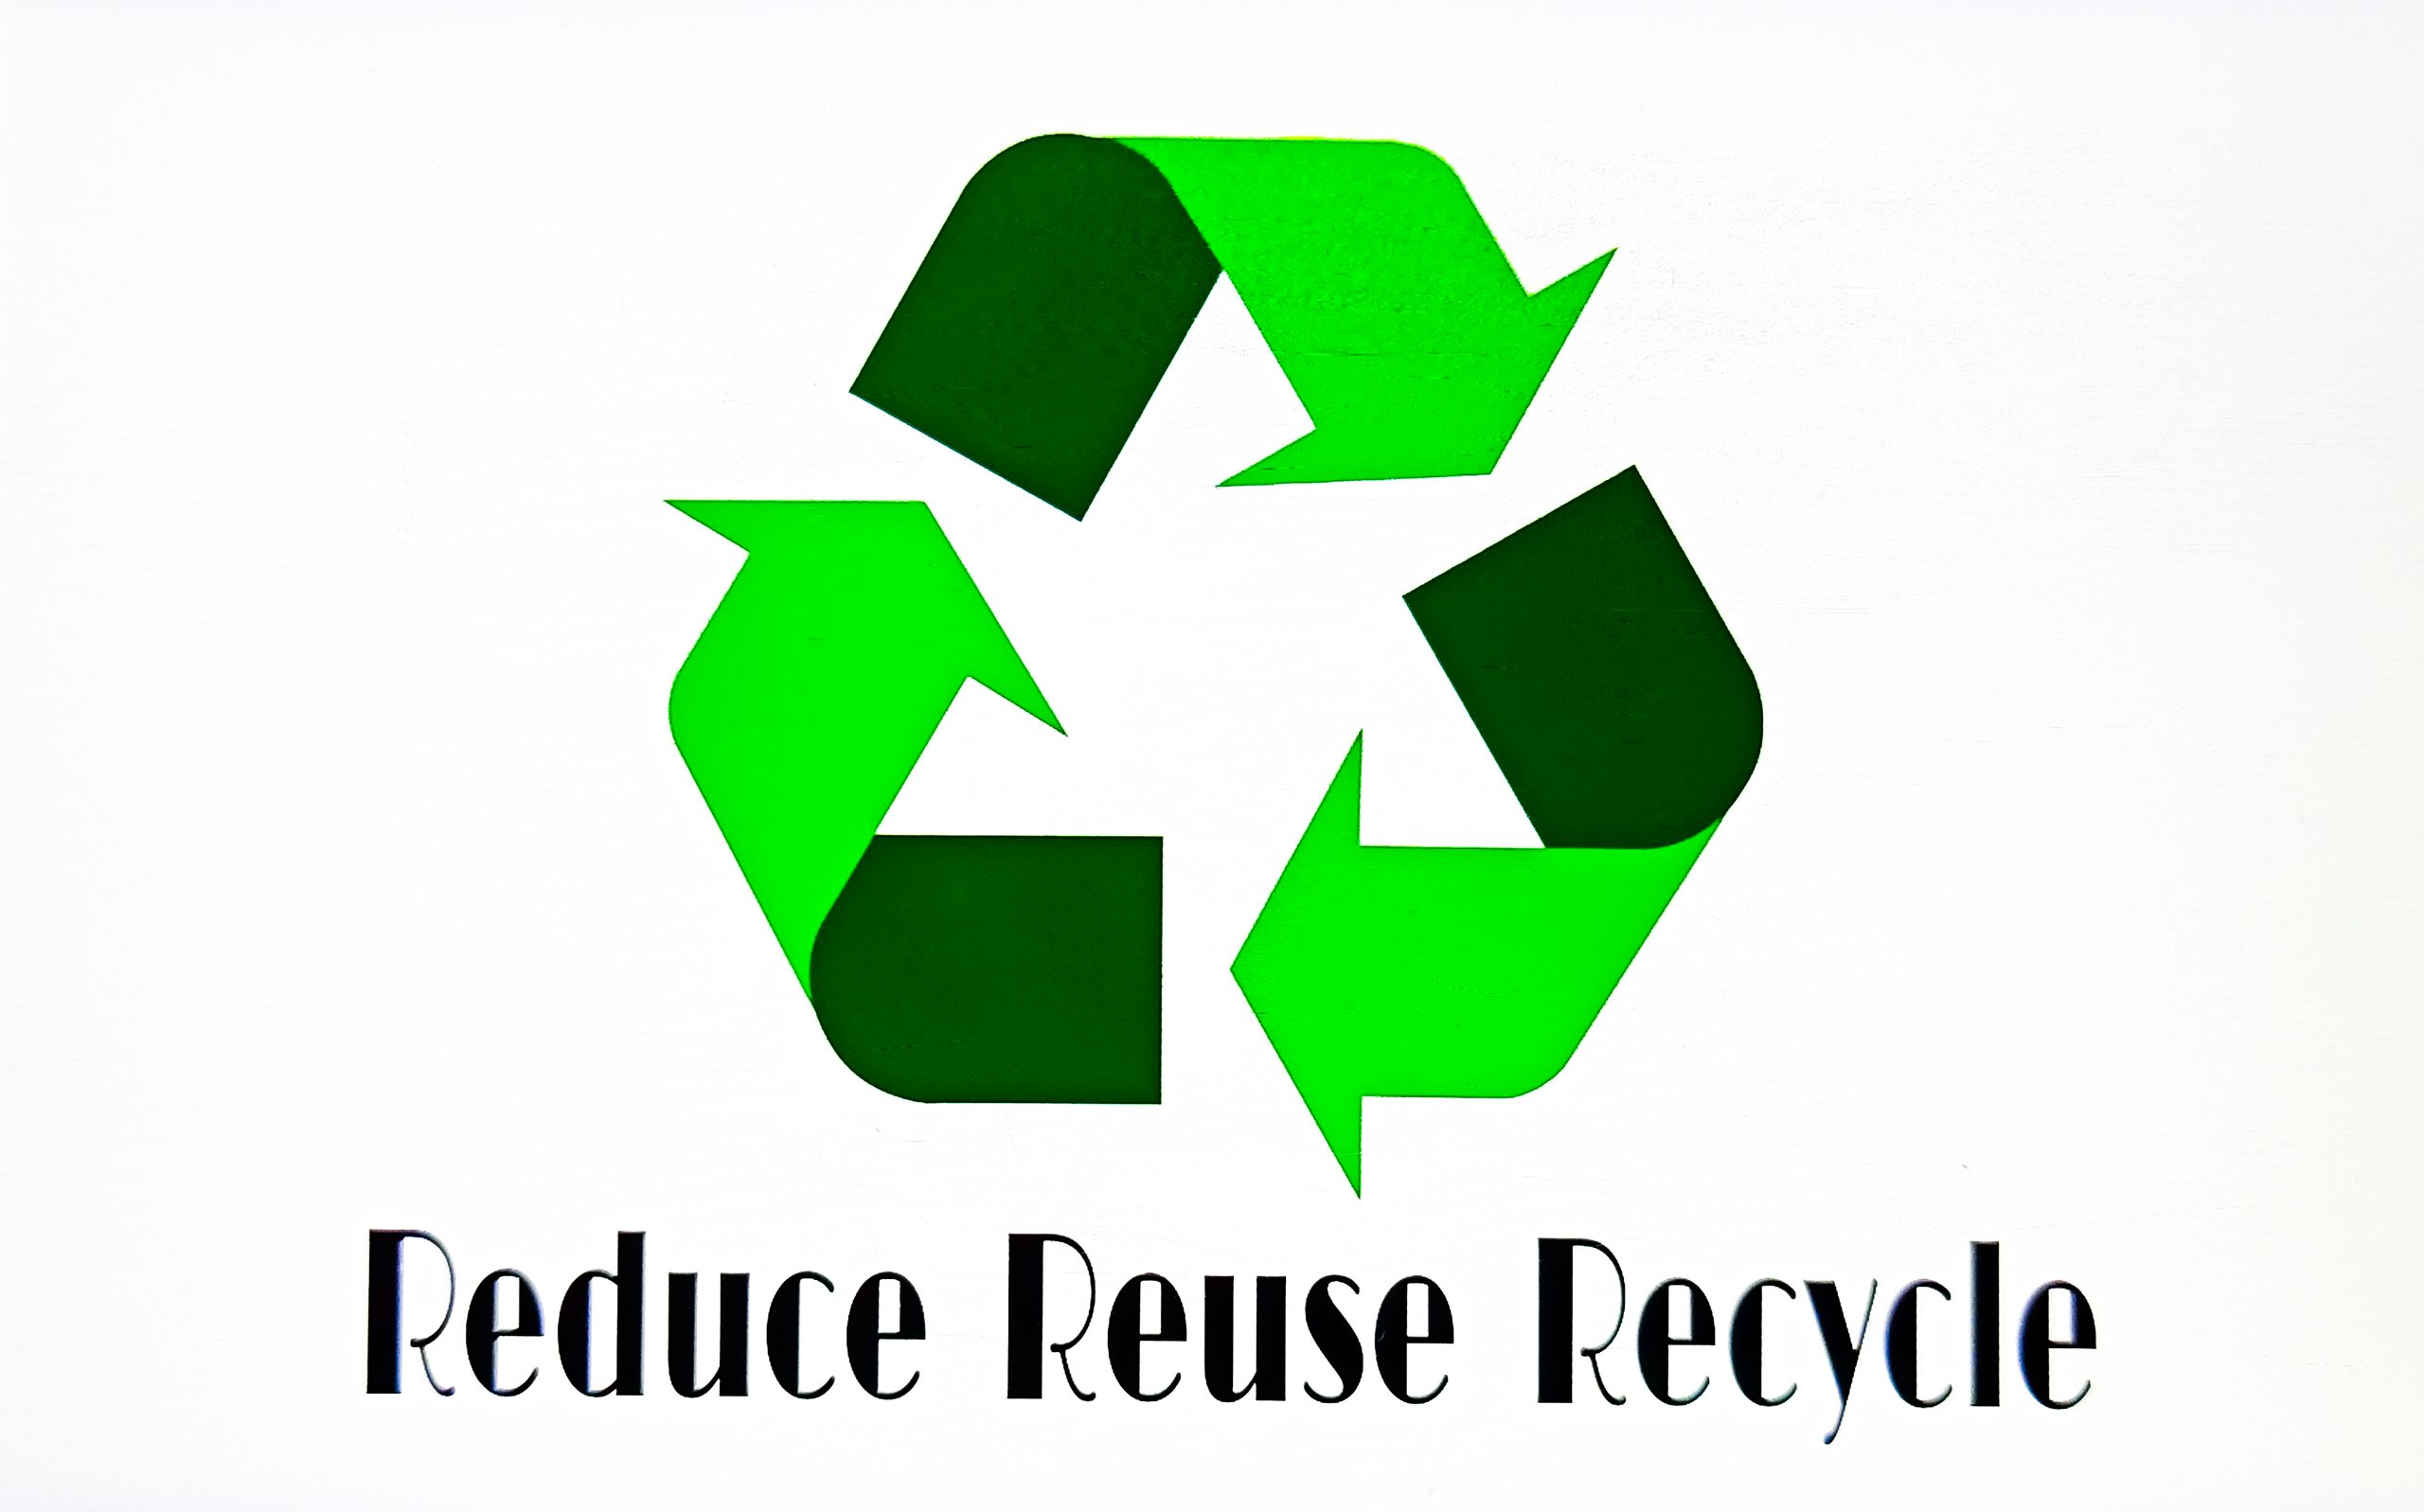 Reduce Reuse Recycle Illustration